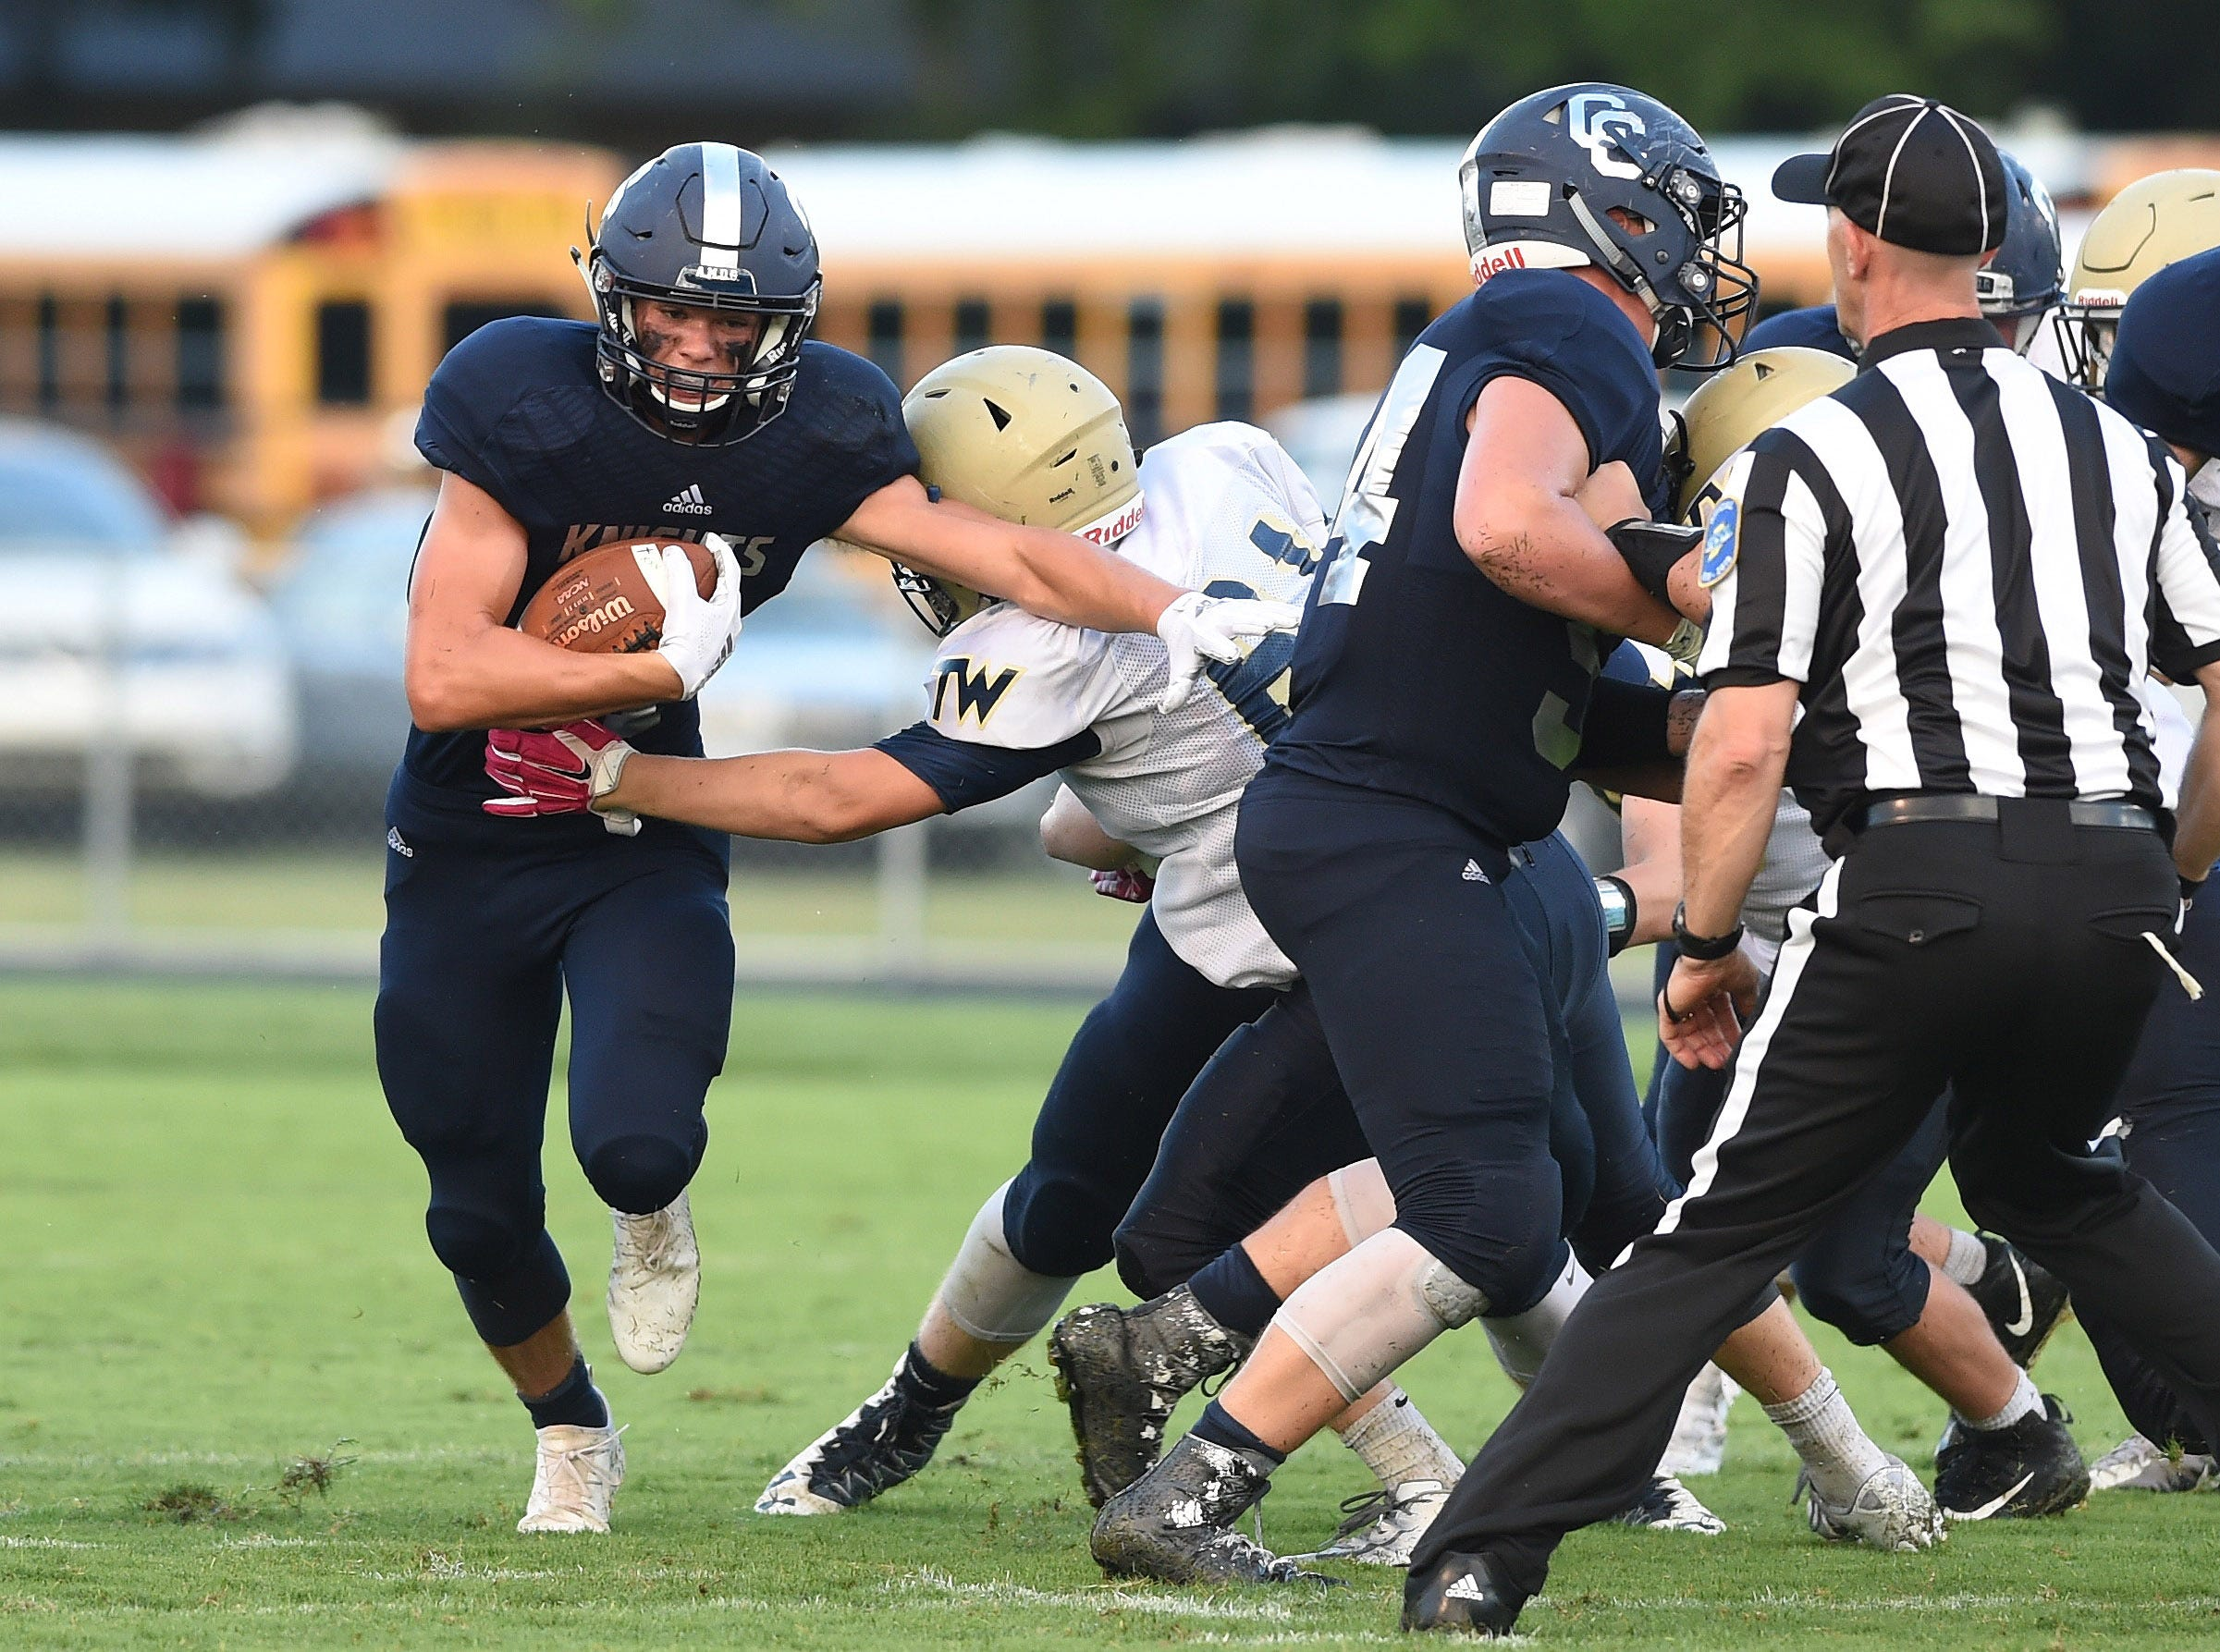 Scenes from a soggy Central Catholic Friday night as the Knights take on Tri-West.